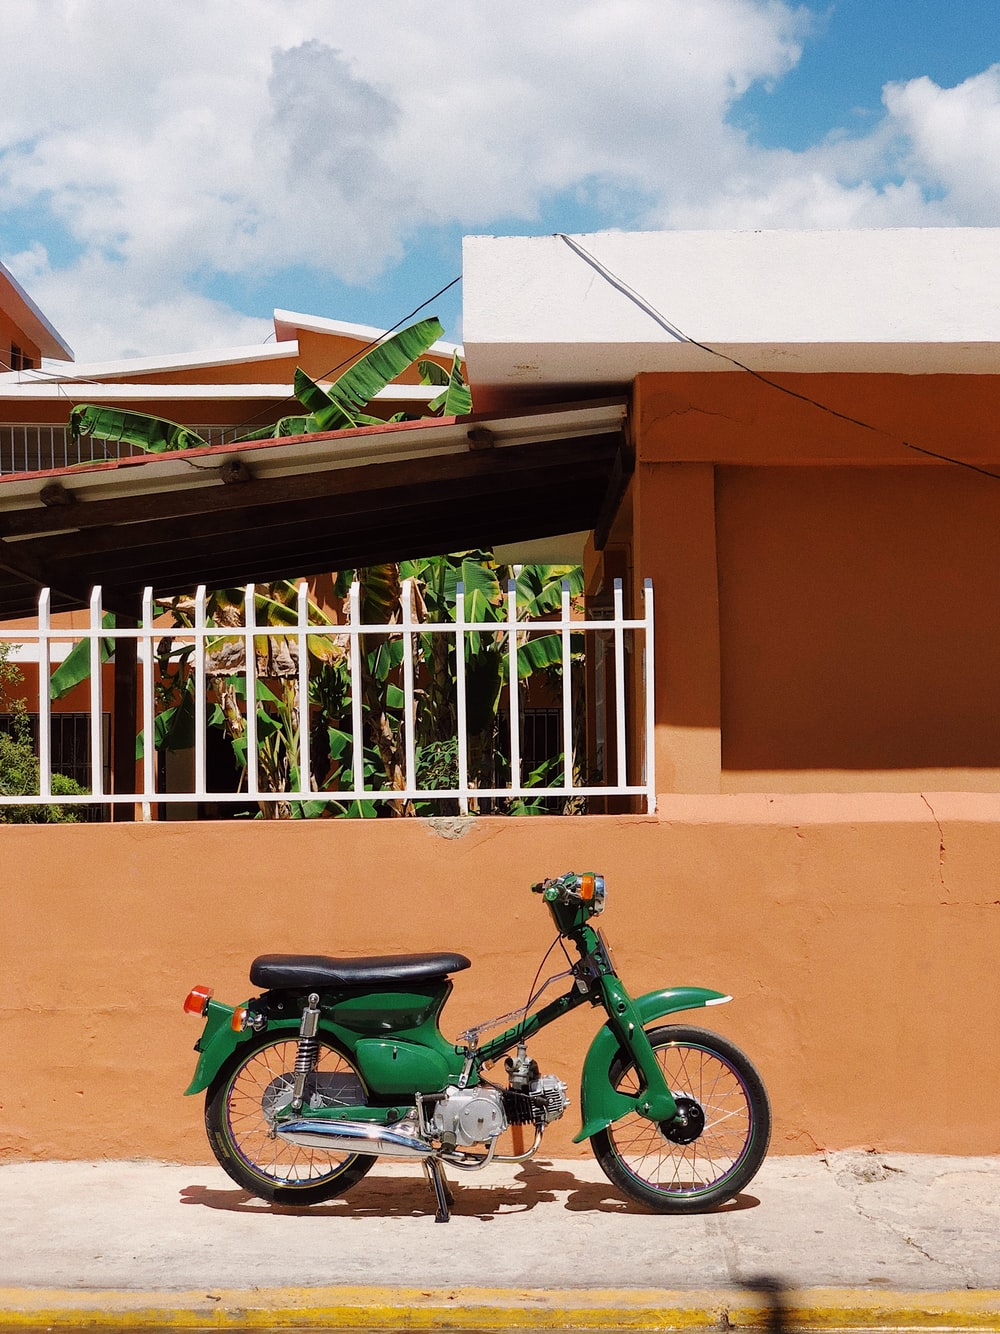 green and black motorcycle parked beside brown concrete building during daytime